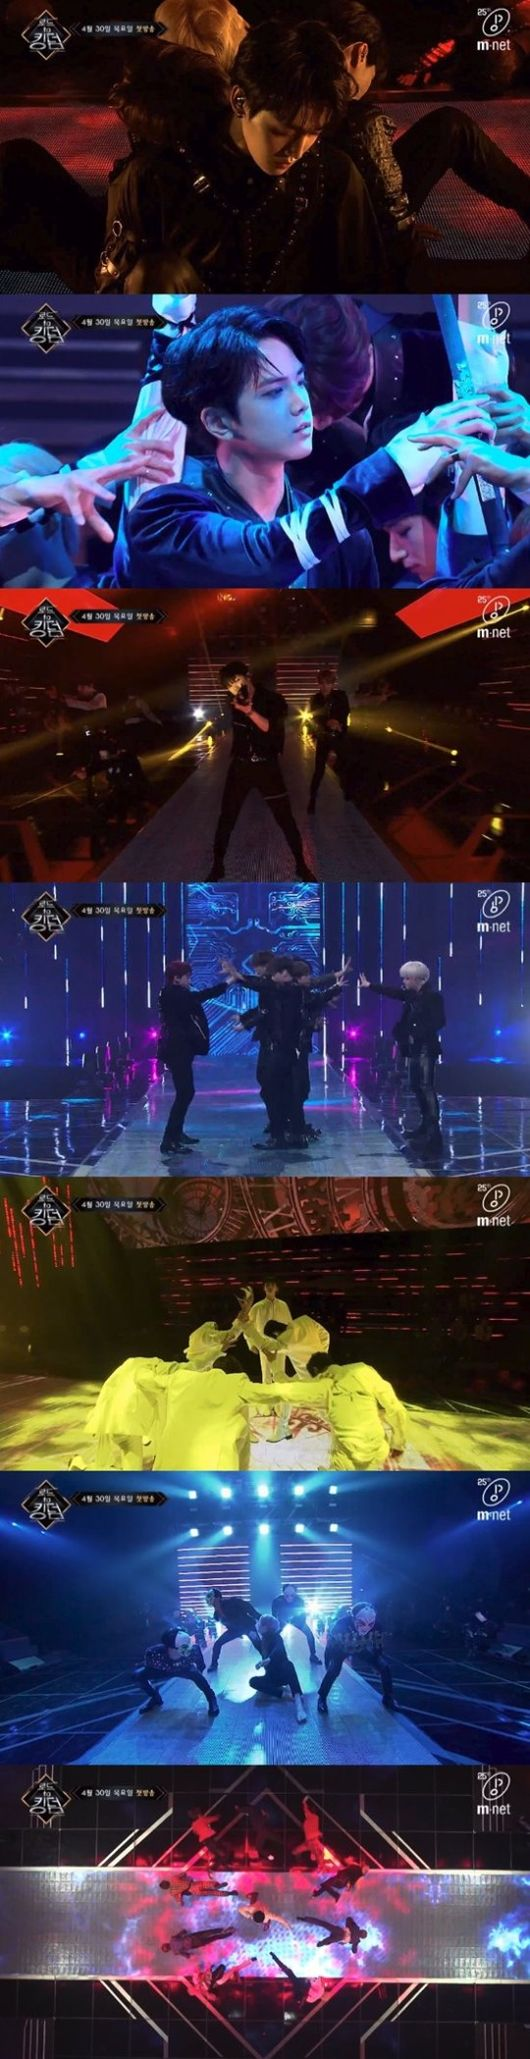 """""""Road To Kingdom"""" Finishes Recording For 1st Round Of Competition With SHINee, SEVENTEEN's Songs And So On"""